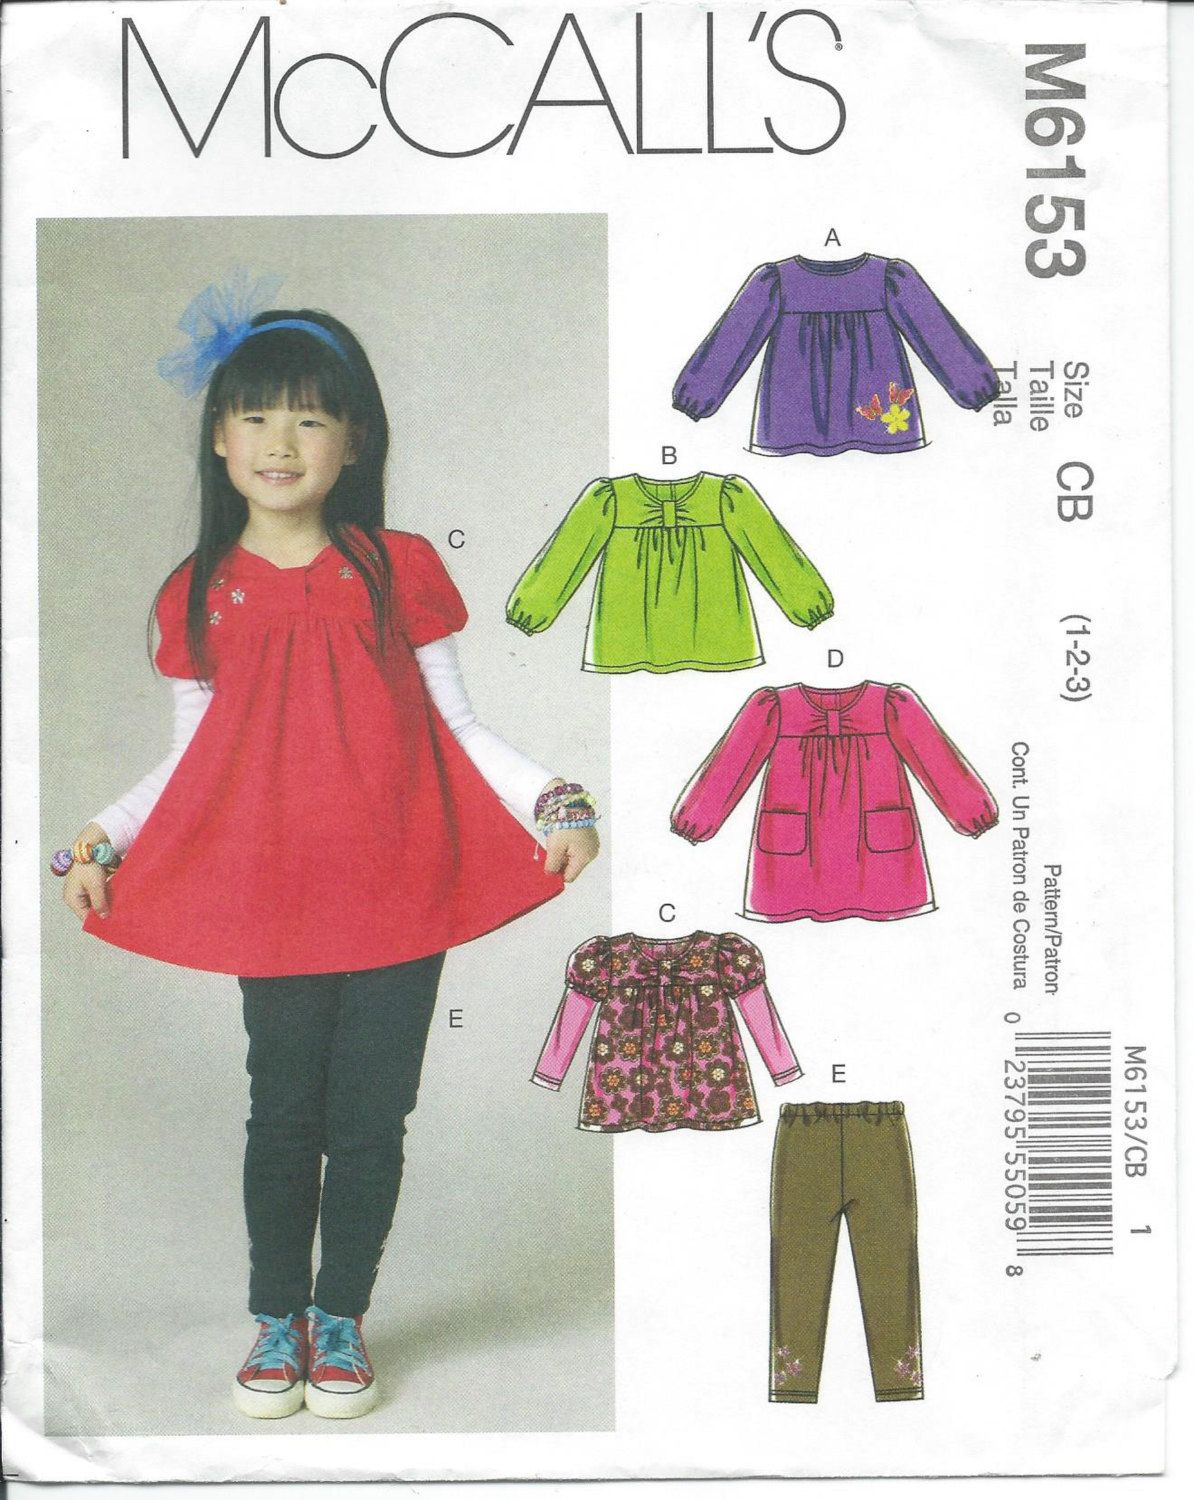 Mccalls 6153 girls toddler top dress leggings sewing mccalls 6153 girls toddlers tops dress and leggings sewing pattern sizes 1 2 3 jeuxipadfo Choice Image